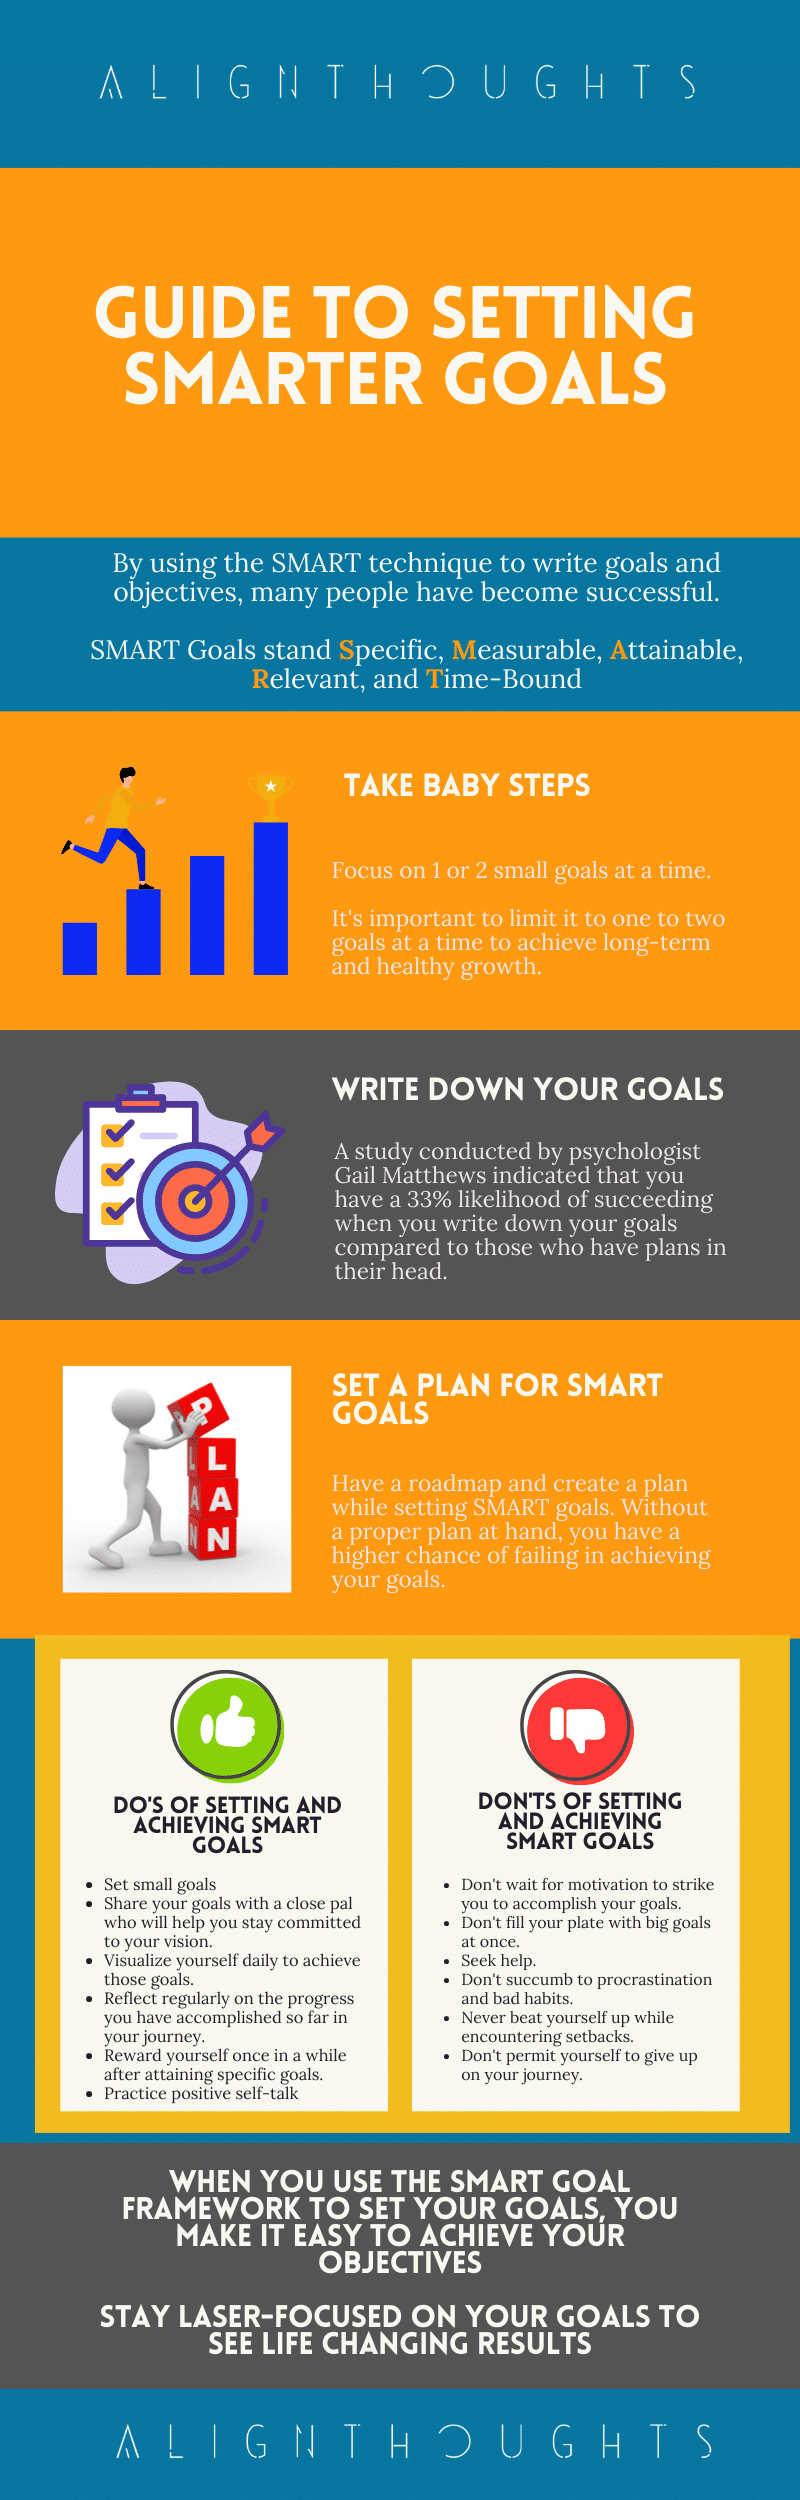 GUIDE-TO-SETTING-SMARTER-GOALS-alignthoughts